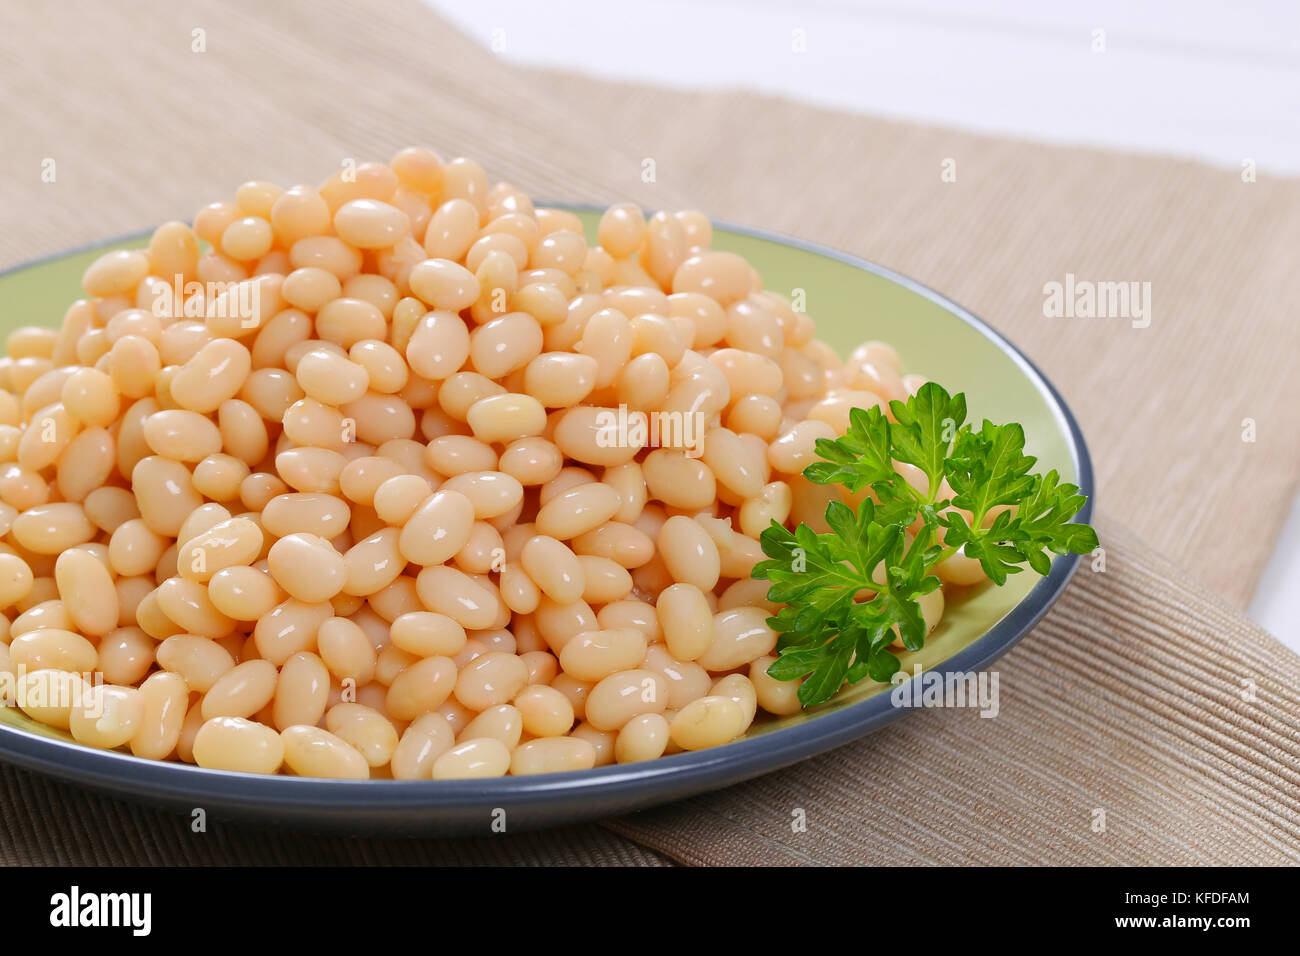 plate of canned white beans on beige place mat - close up - Stock Image